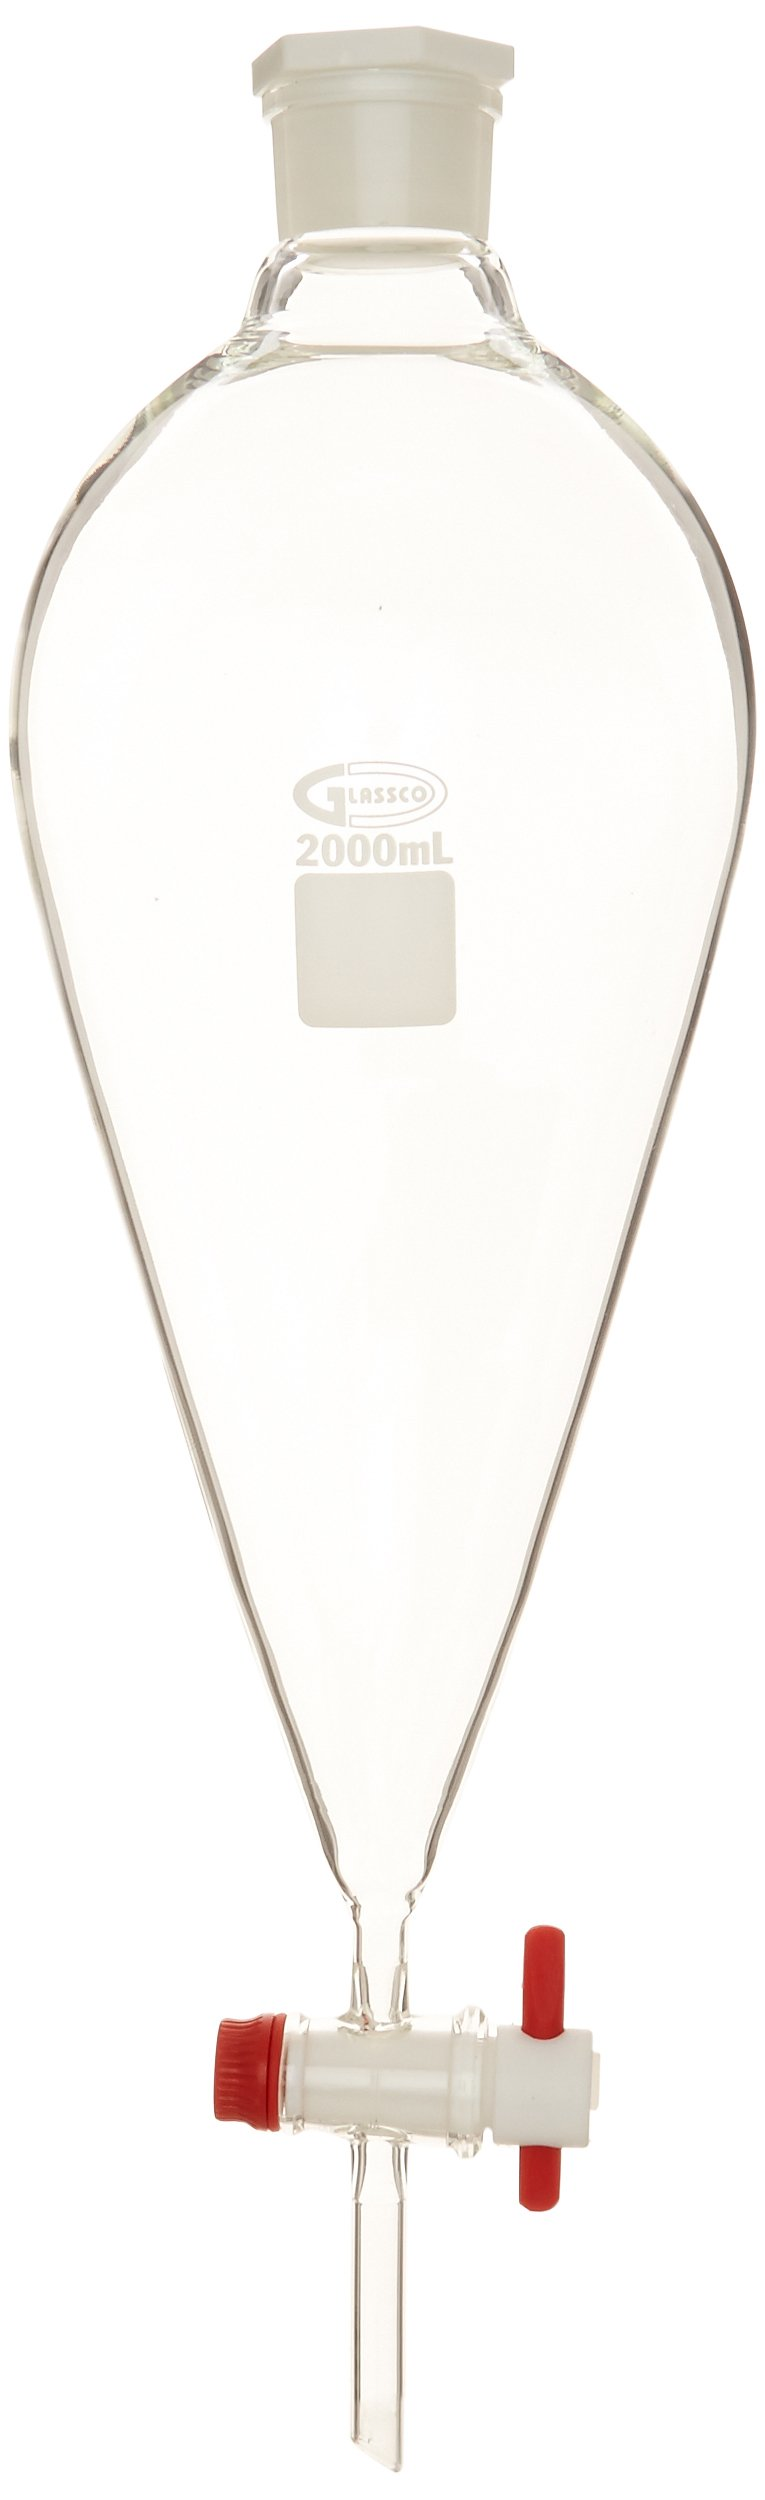 United Scientific SF149-2000 Glass Conical Seperatory Funnel with PTFE Stopcock and Plastic Stopper, 2000ml Capacity by United Scientific Supplies